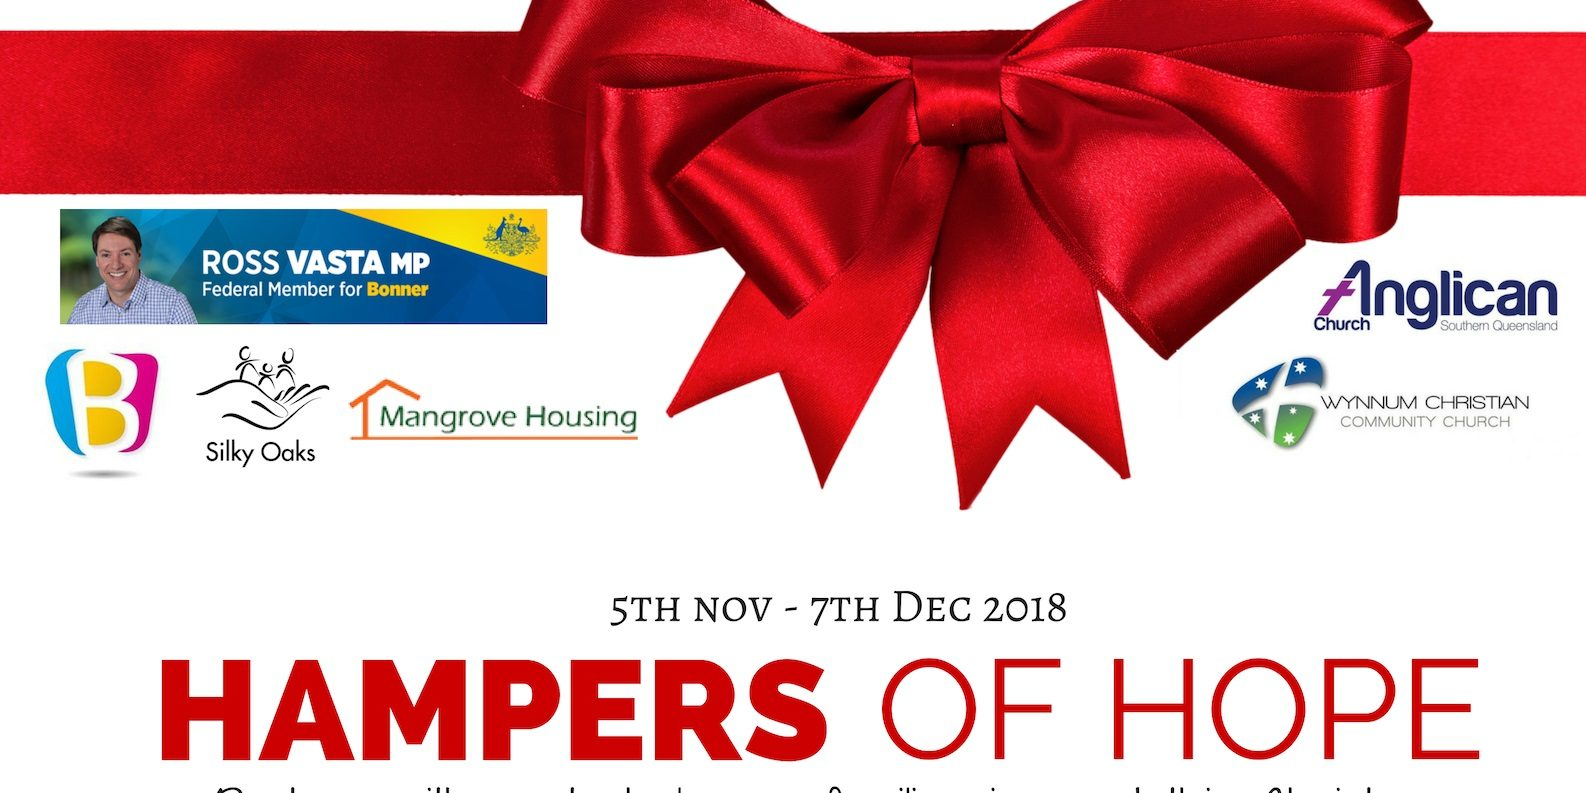 donate to hampers of hope to help families in need this christmas